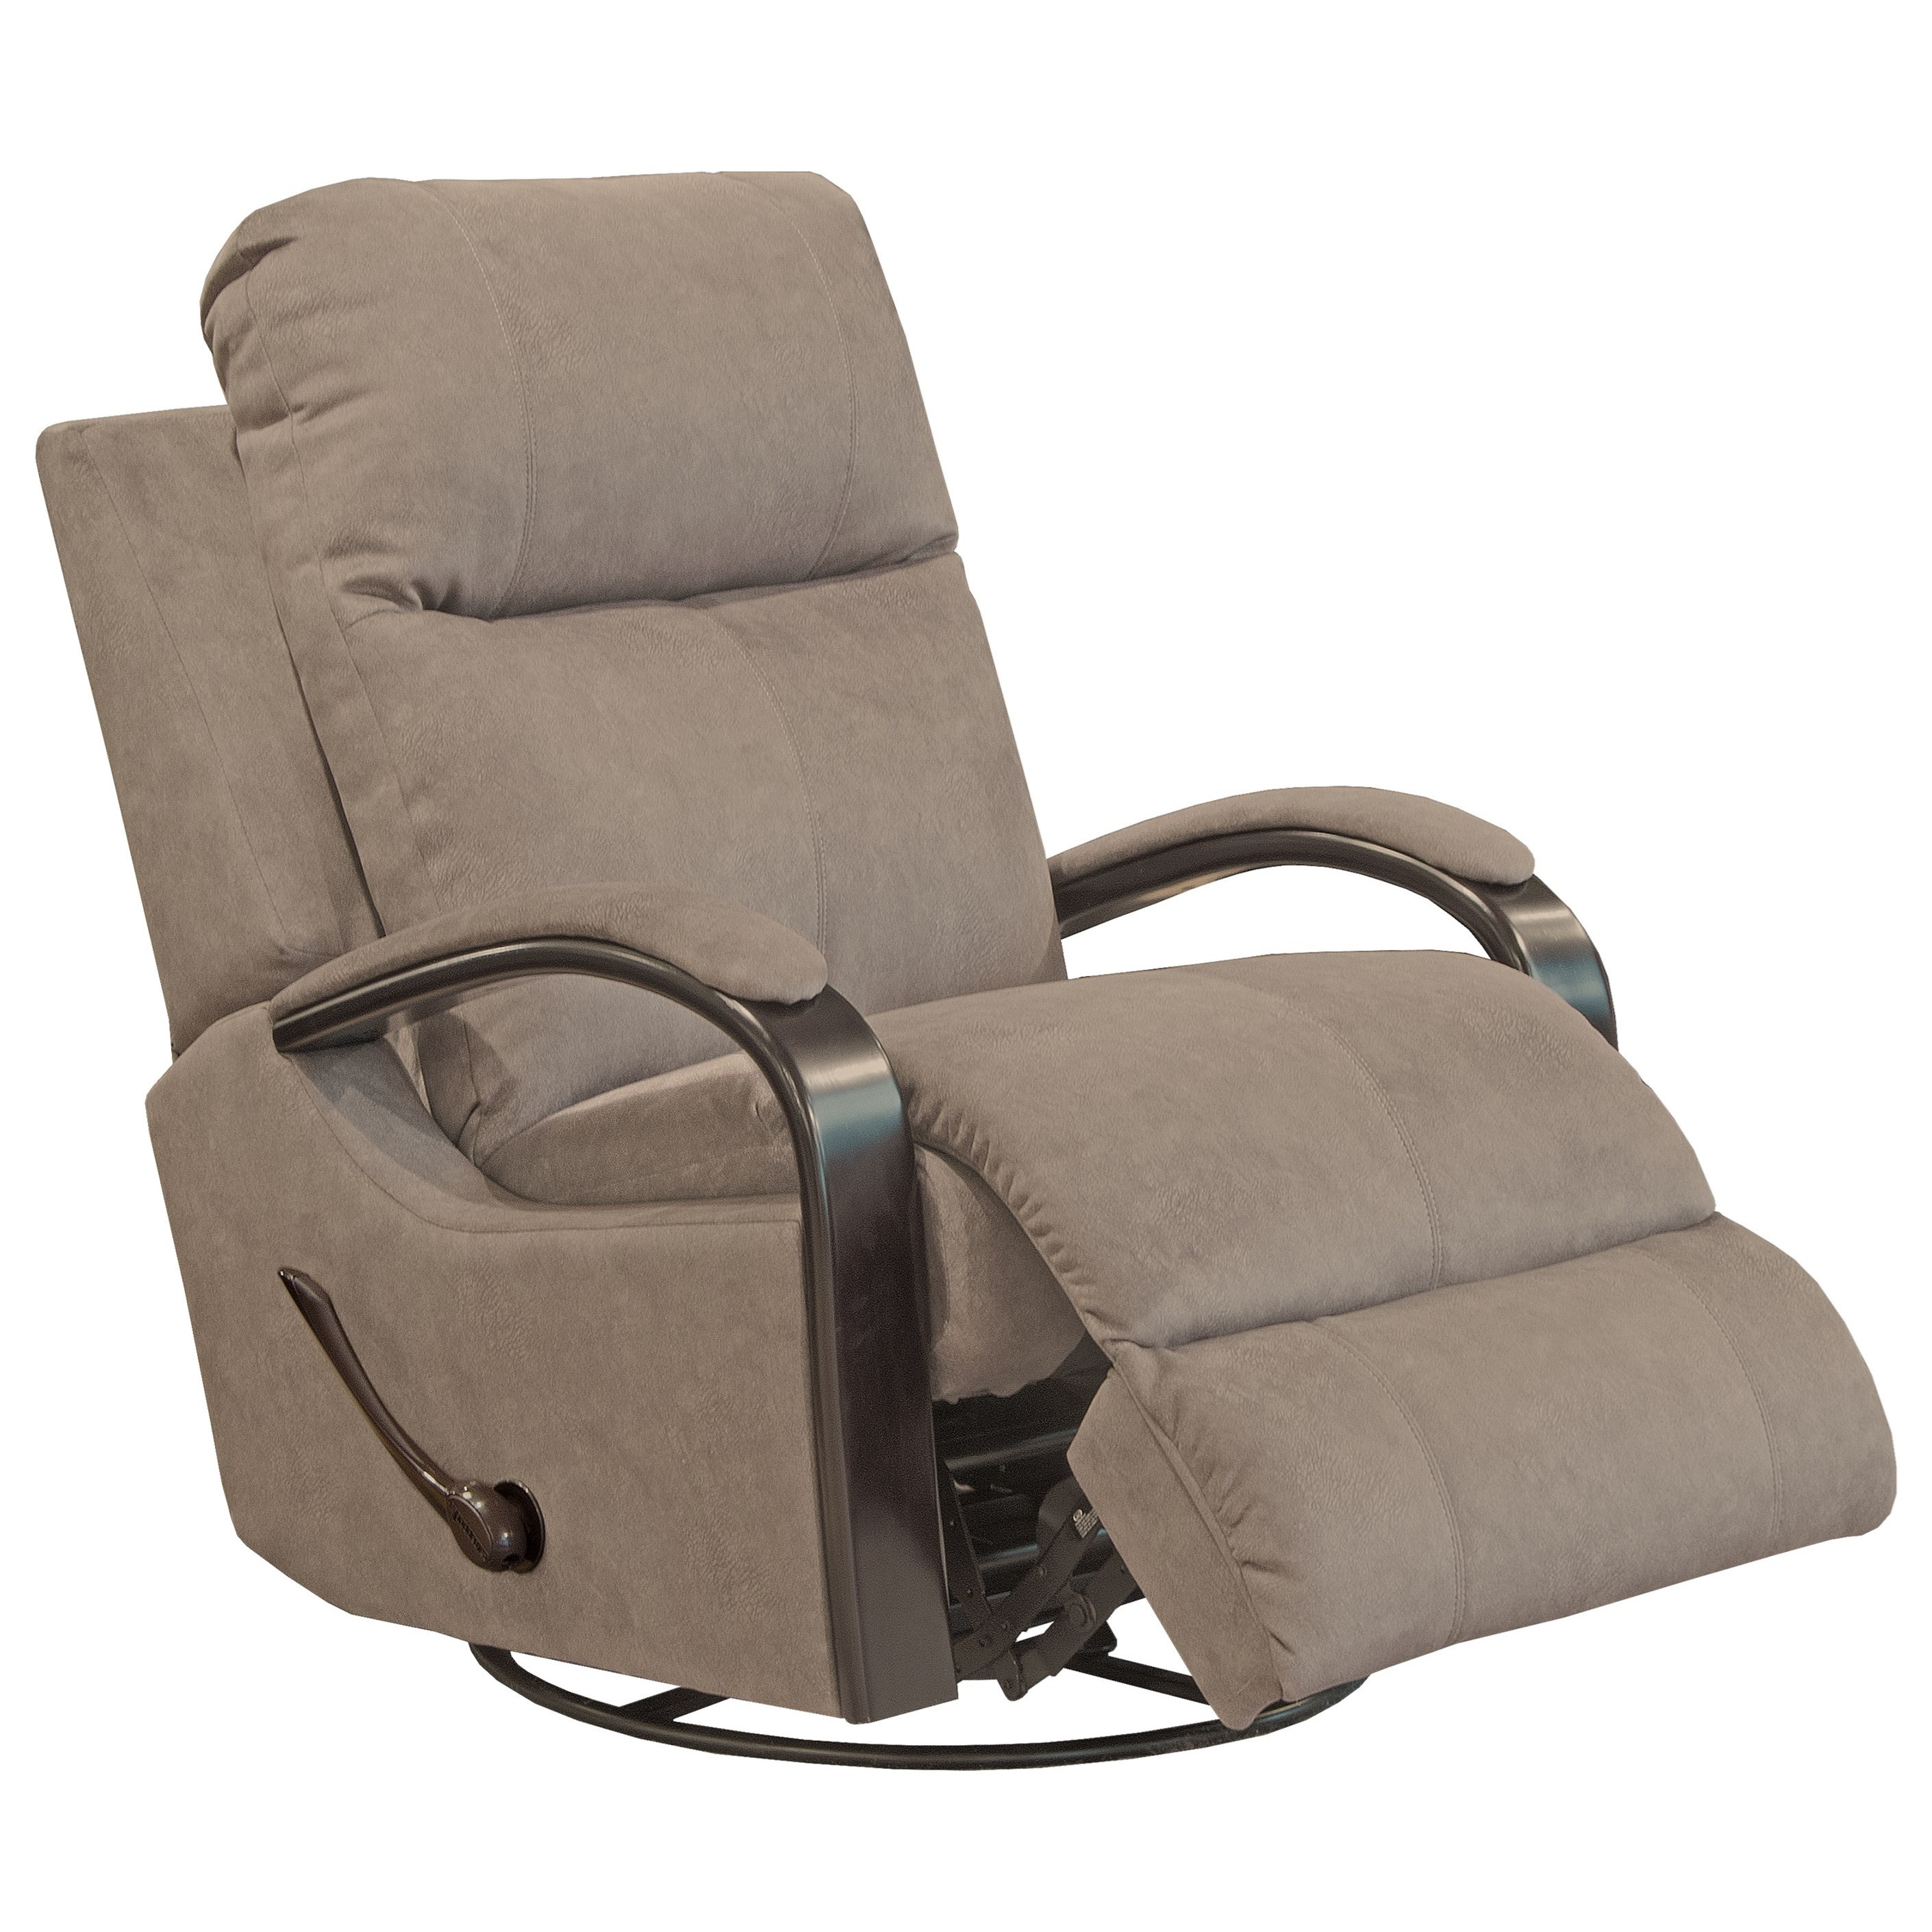 Niles Swivel Glider Recliner by Catnapper at Northeast Factory Direct